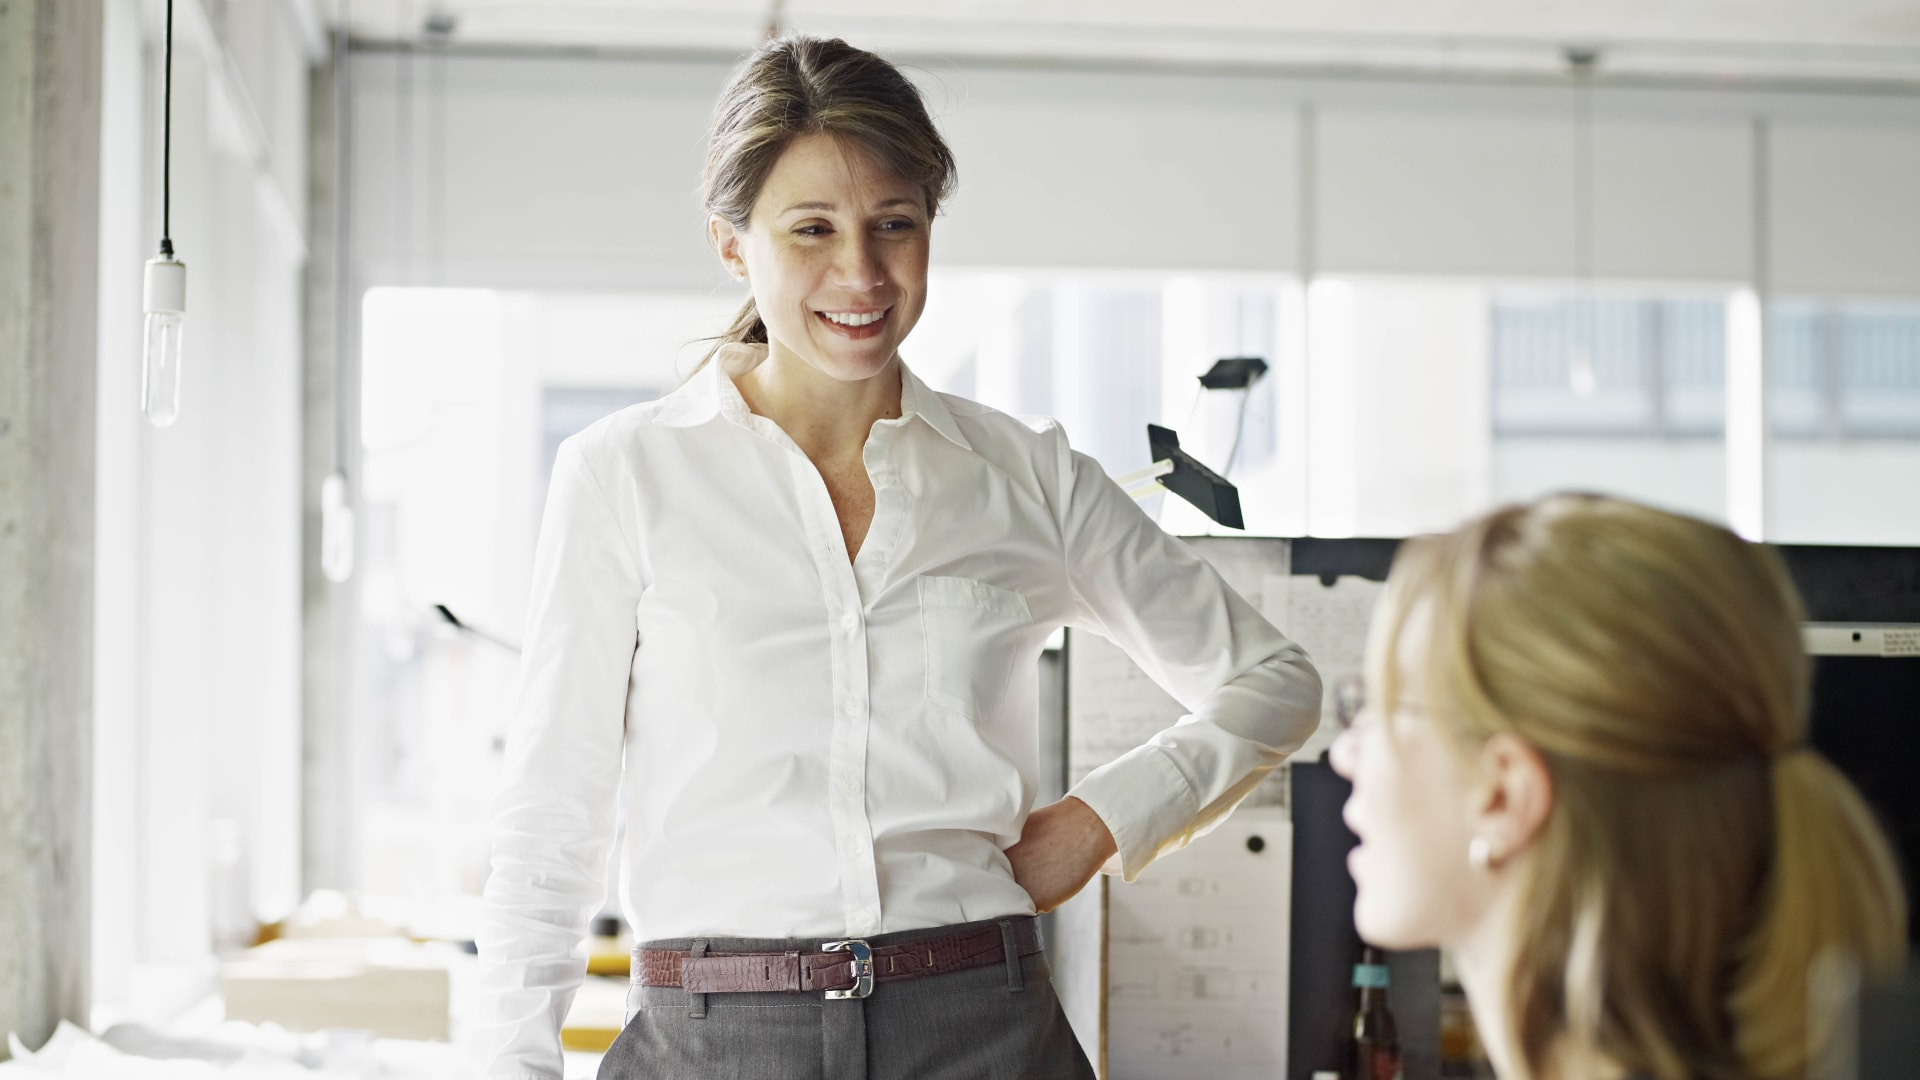 3 Things That Separate Positive Leaders From Negative Bosses